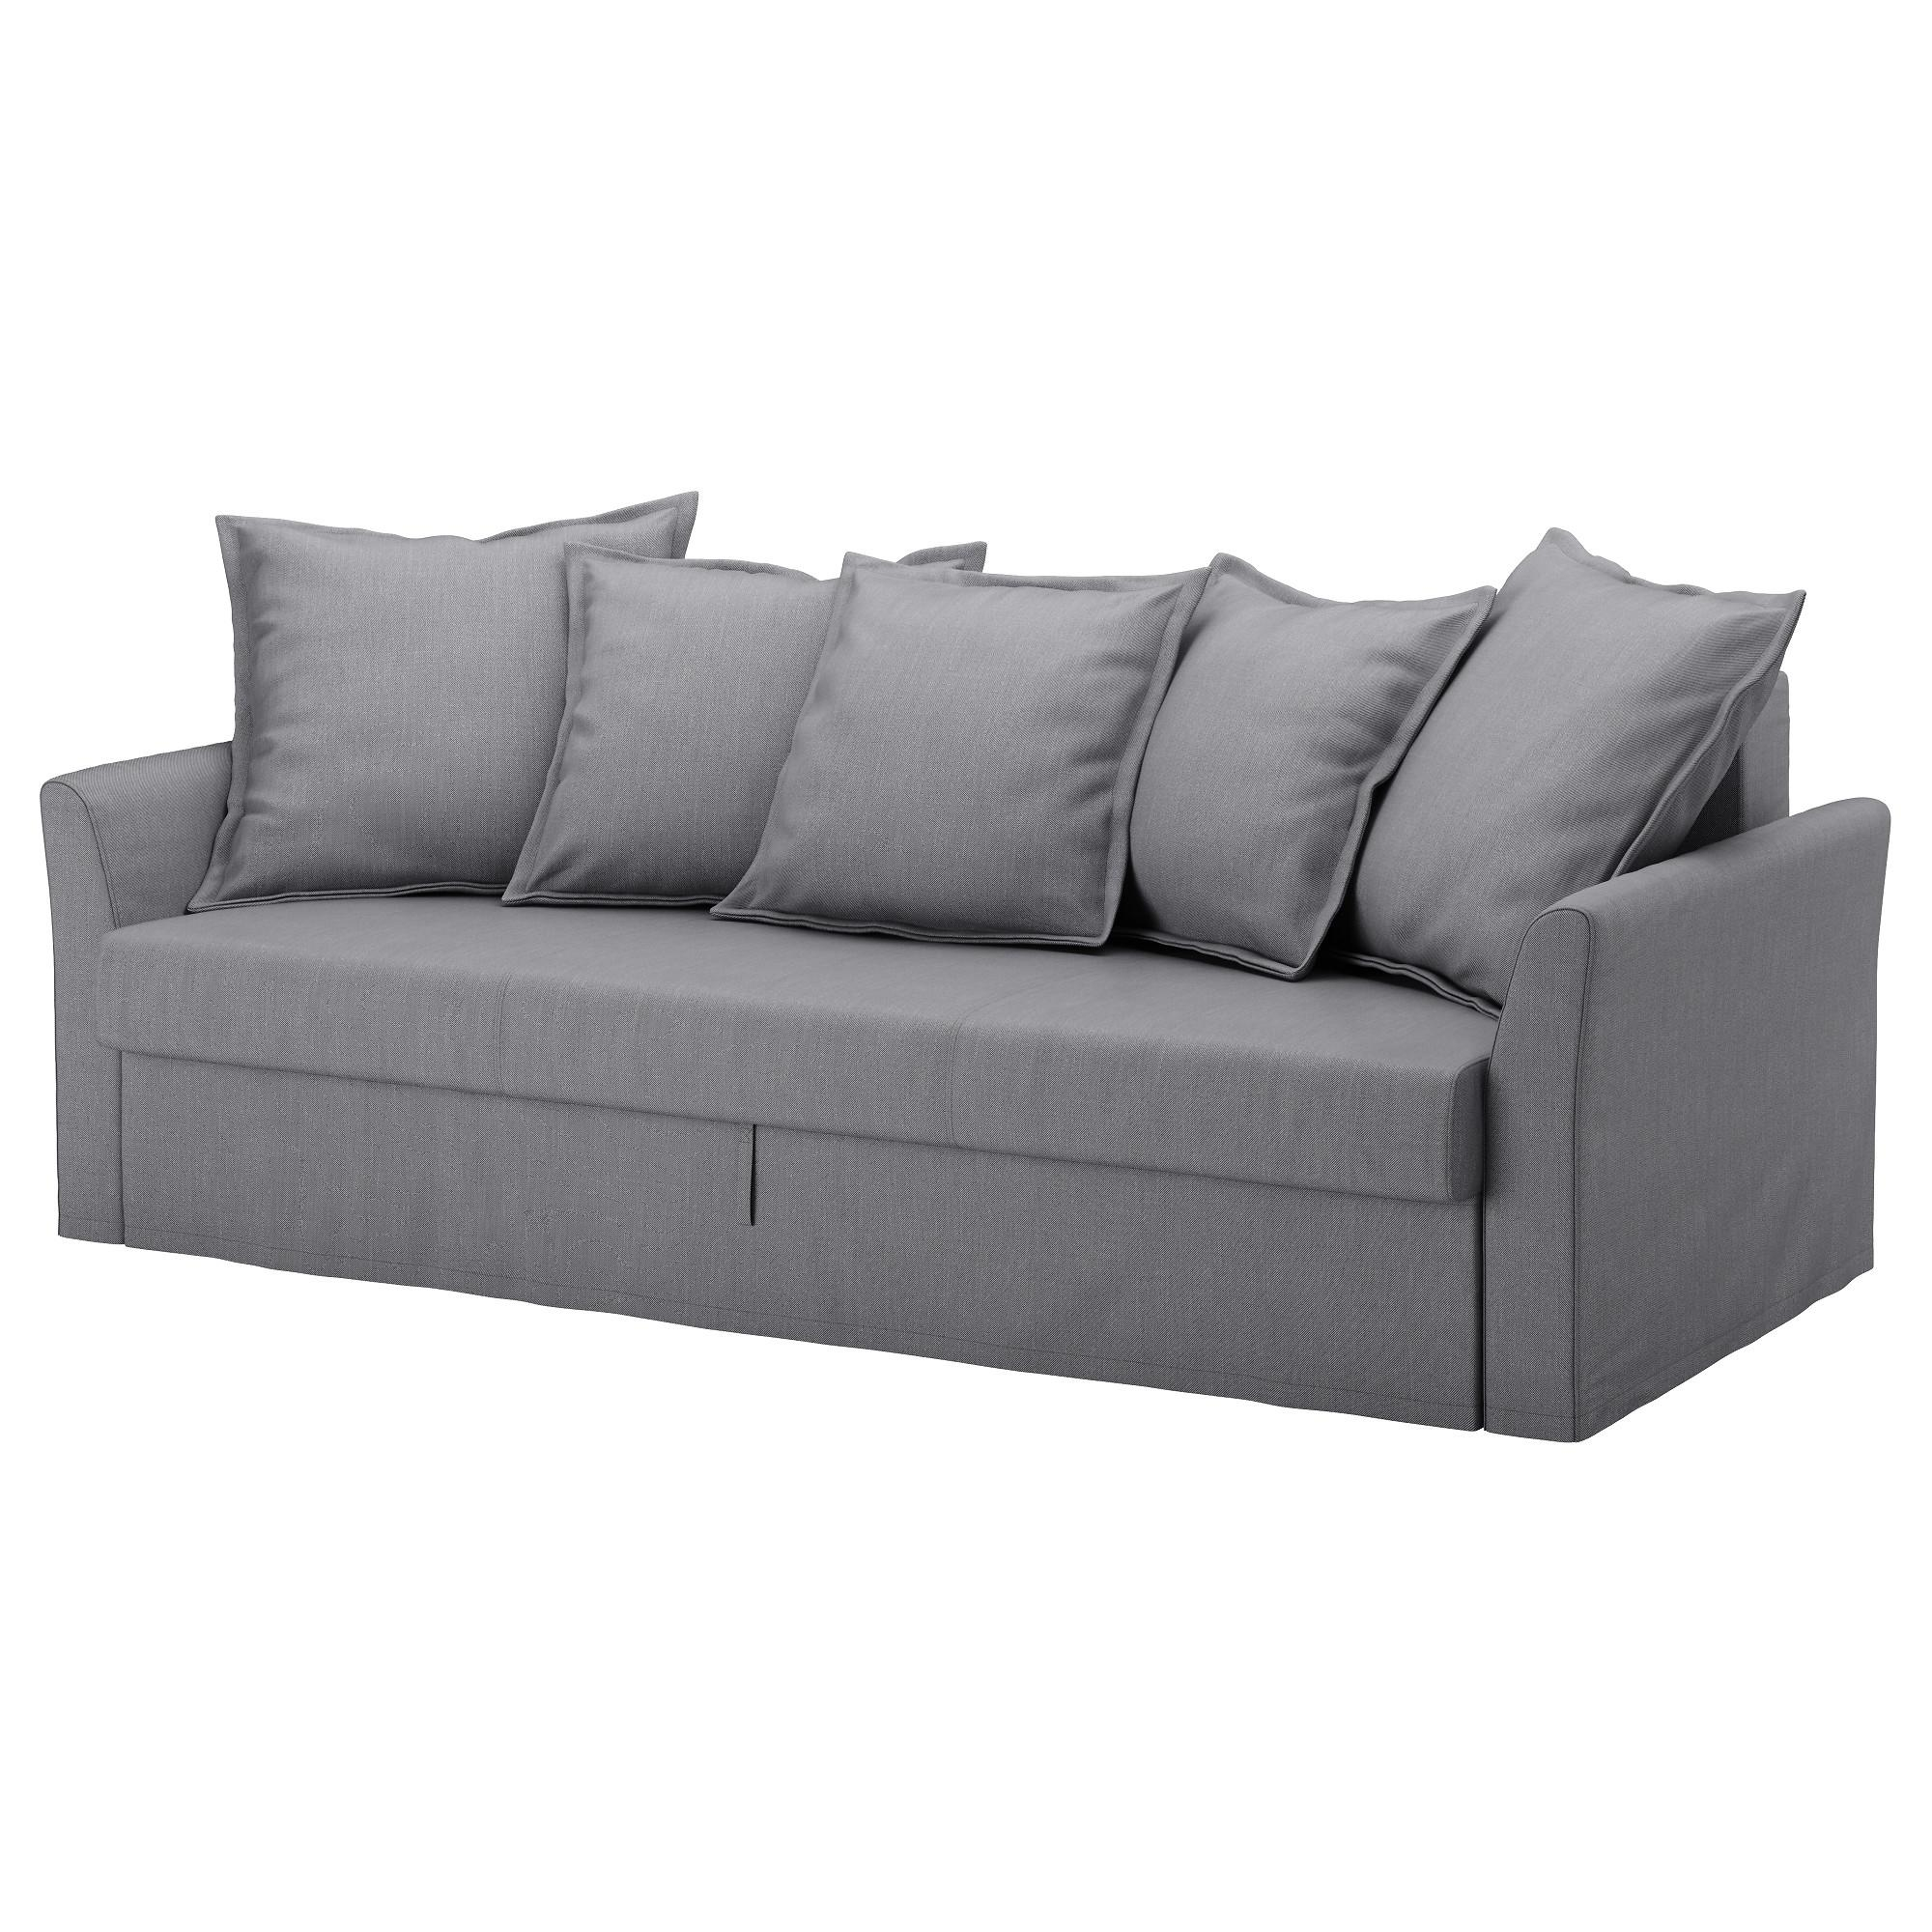 Beautiful Loveseat Sleeper sofas Elegant